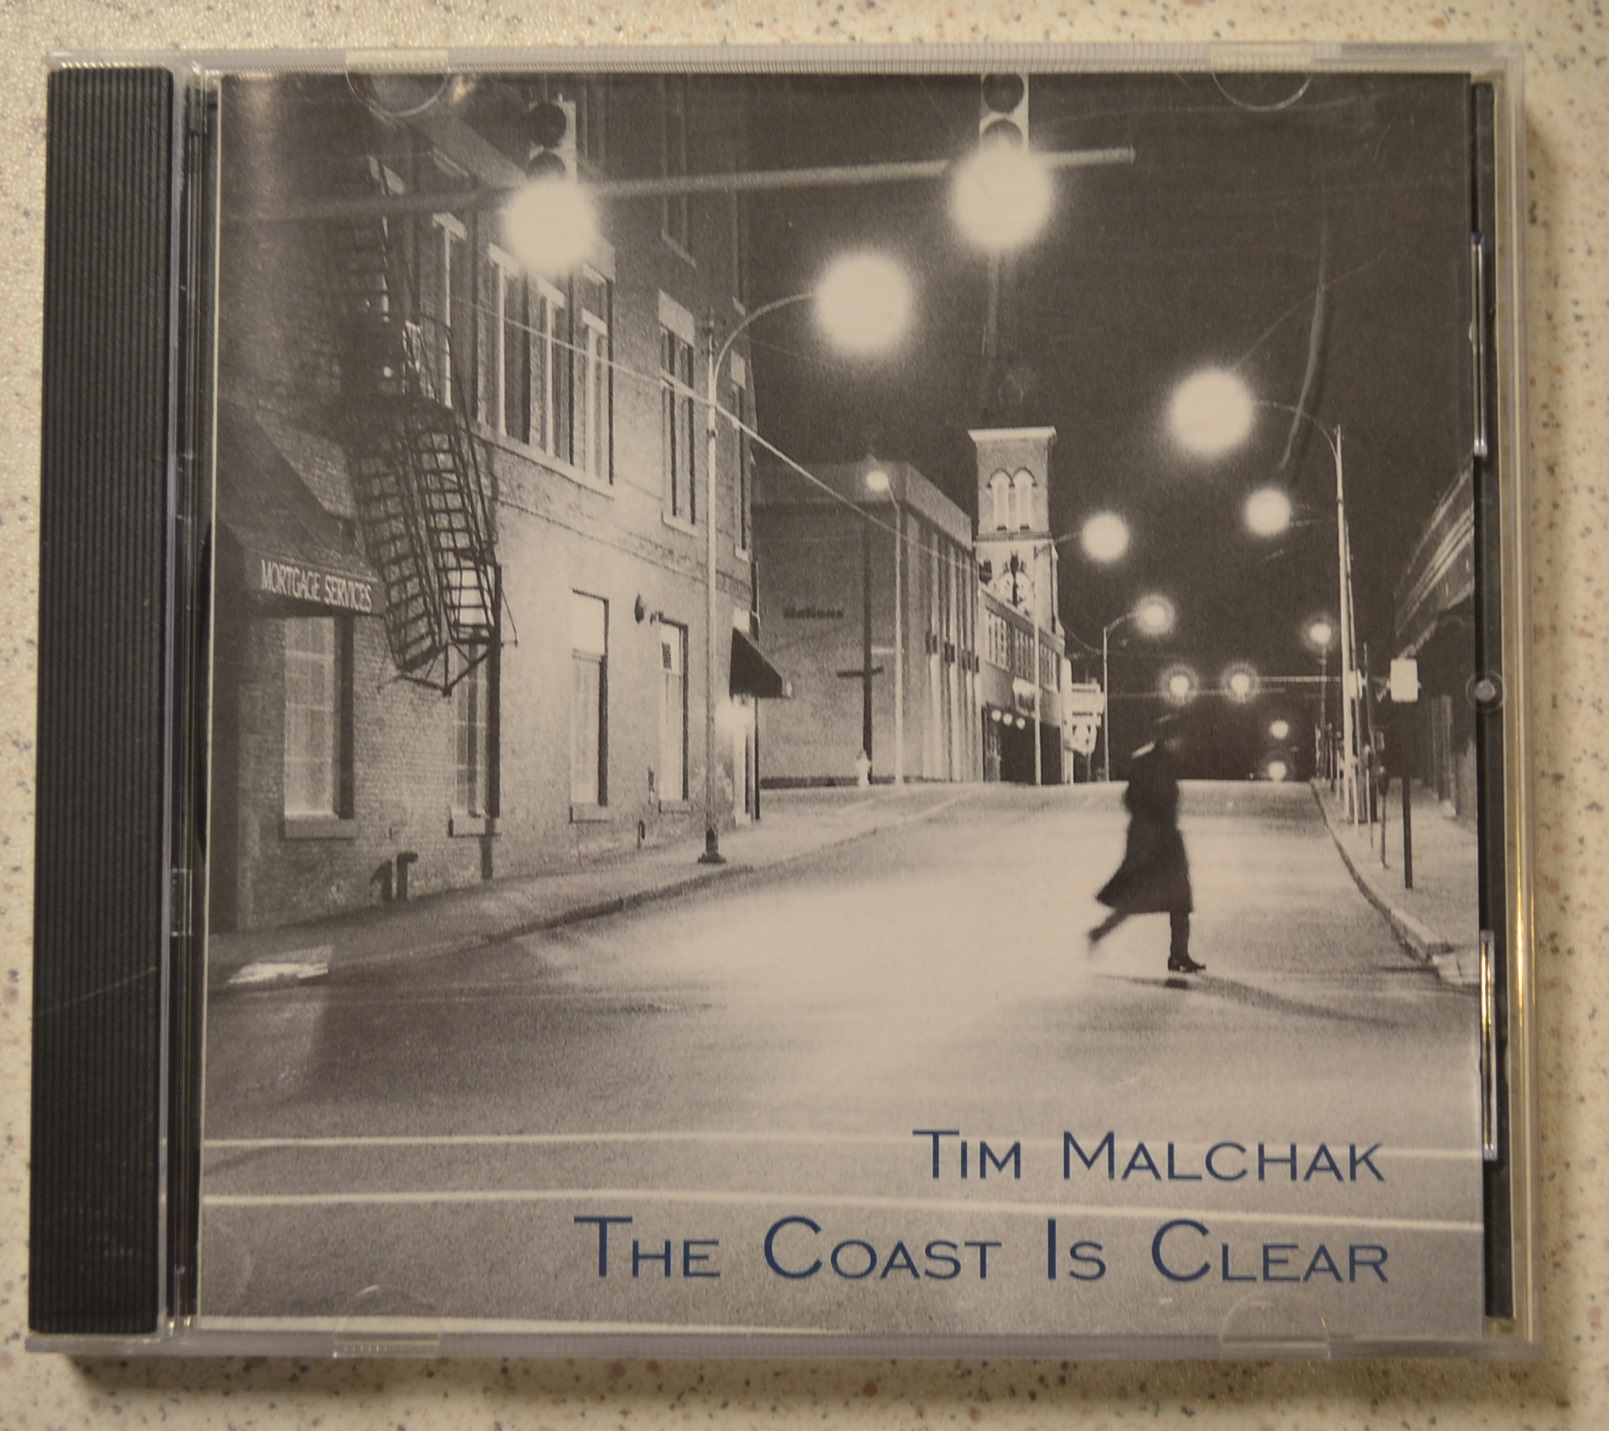 the coast is clear by tim malchak on audio cd album. Black Bedroom Furniture Sets. Home Design Ideas